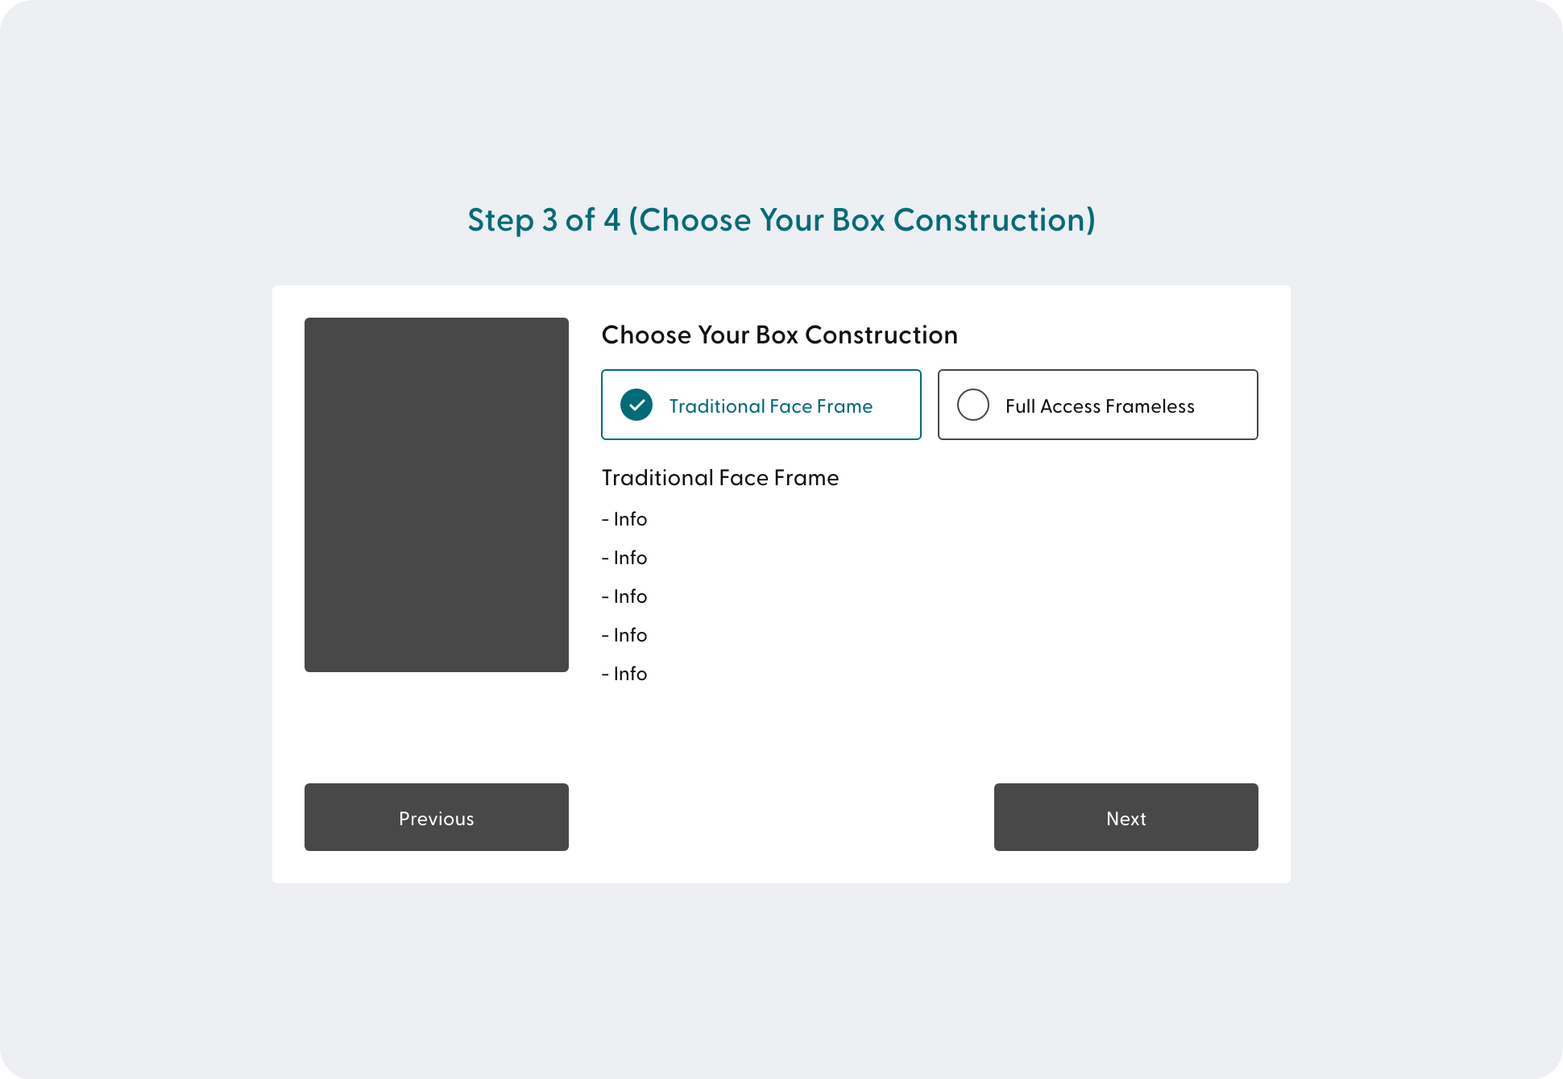 Step 3 of 4 (Choose Your Box Constructio